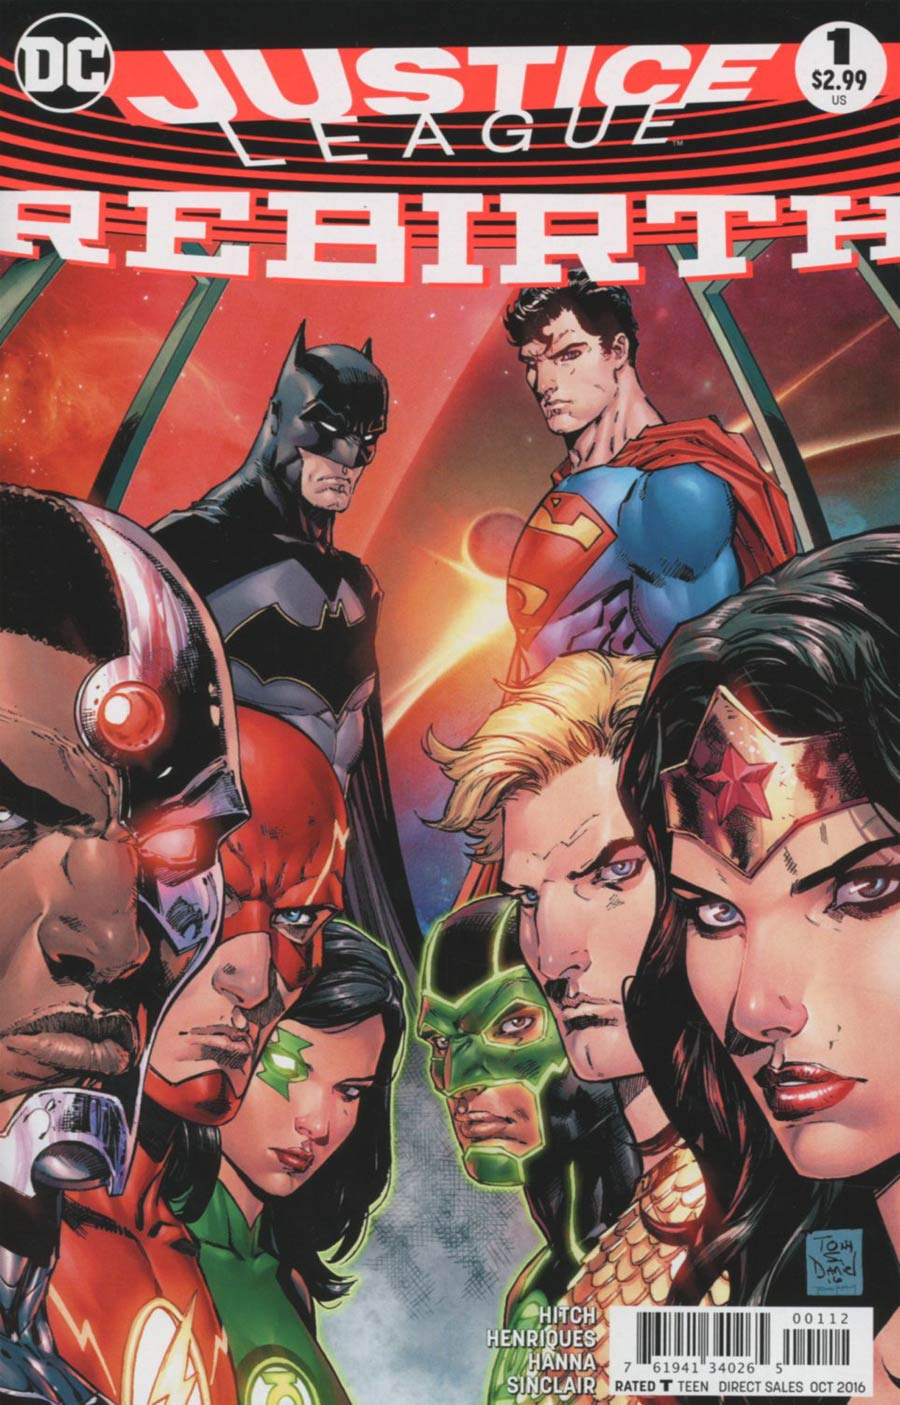 Justice League Rebirth #1 Cover C 2nd Ptg Tony S Daniel Variant Cover